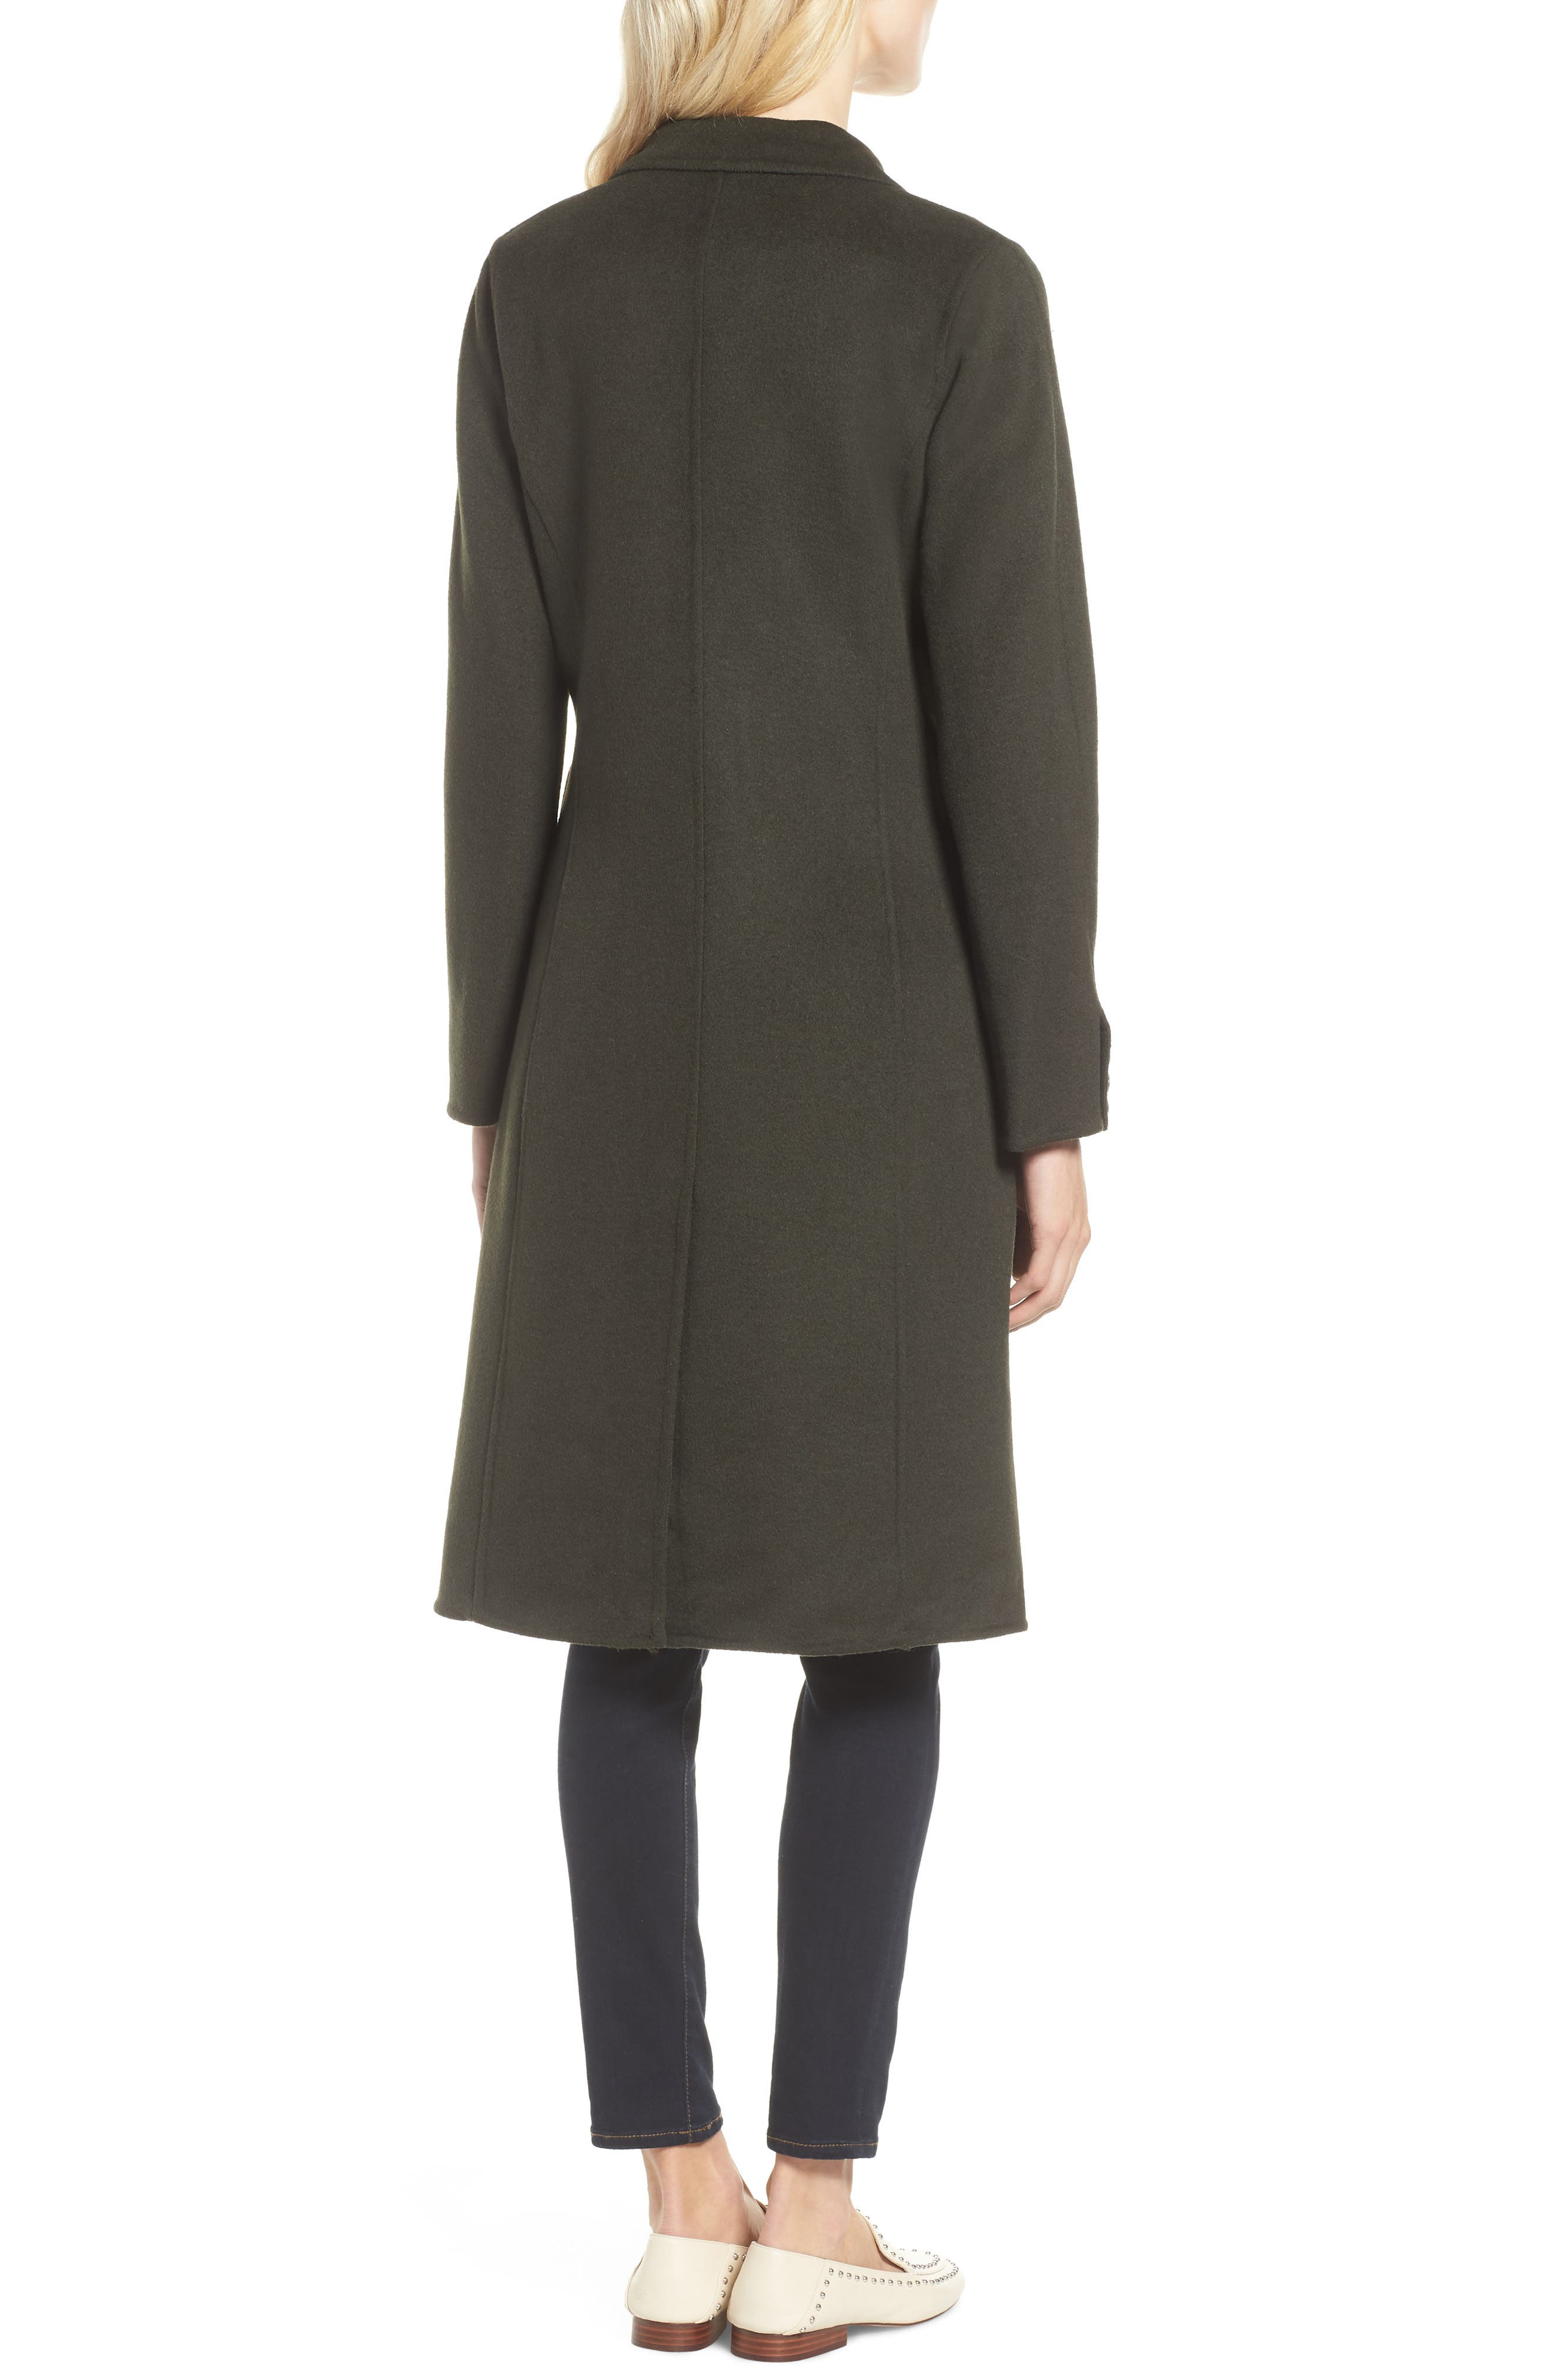 Taylor Double Breasted Wool Coat,                             Alternate thumbnail 2, color,                             300